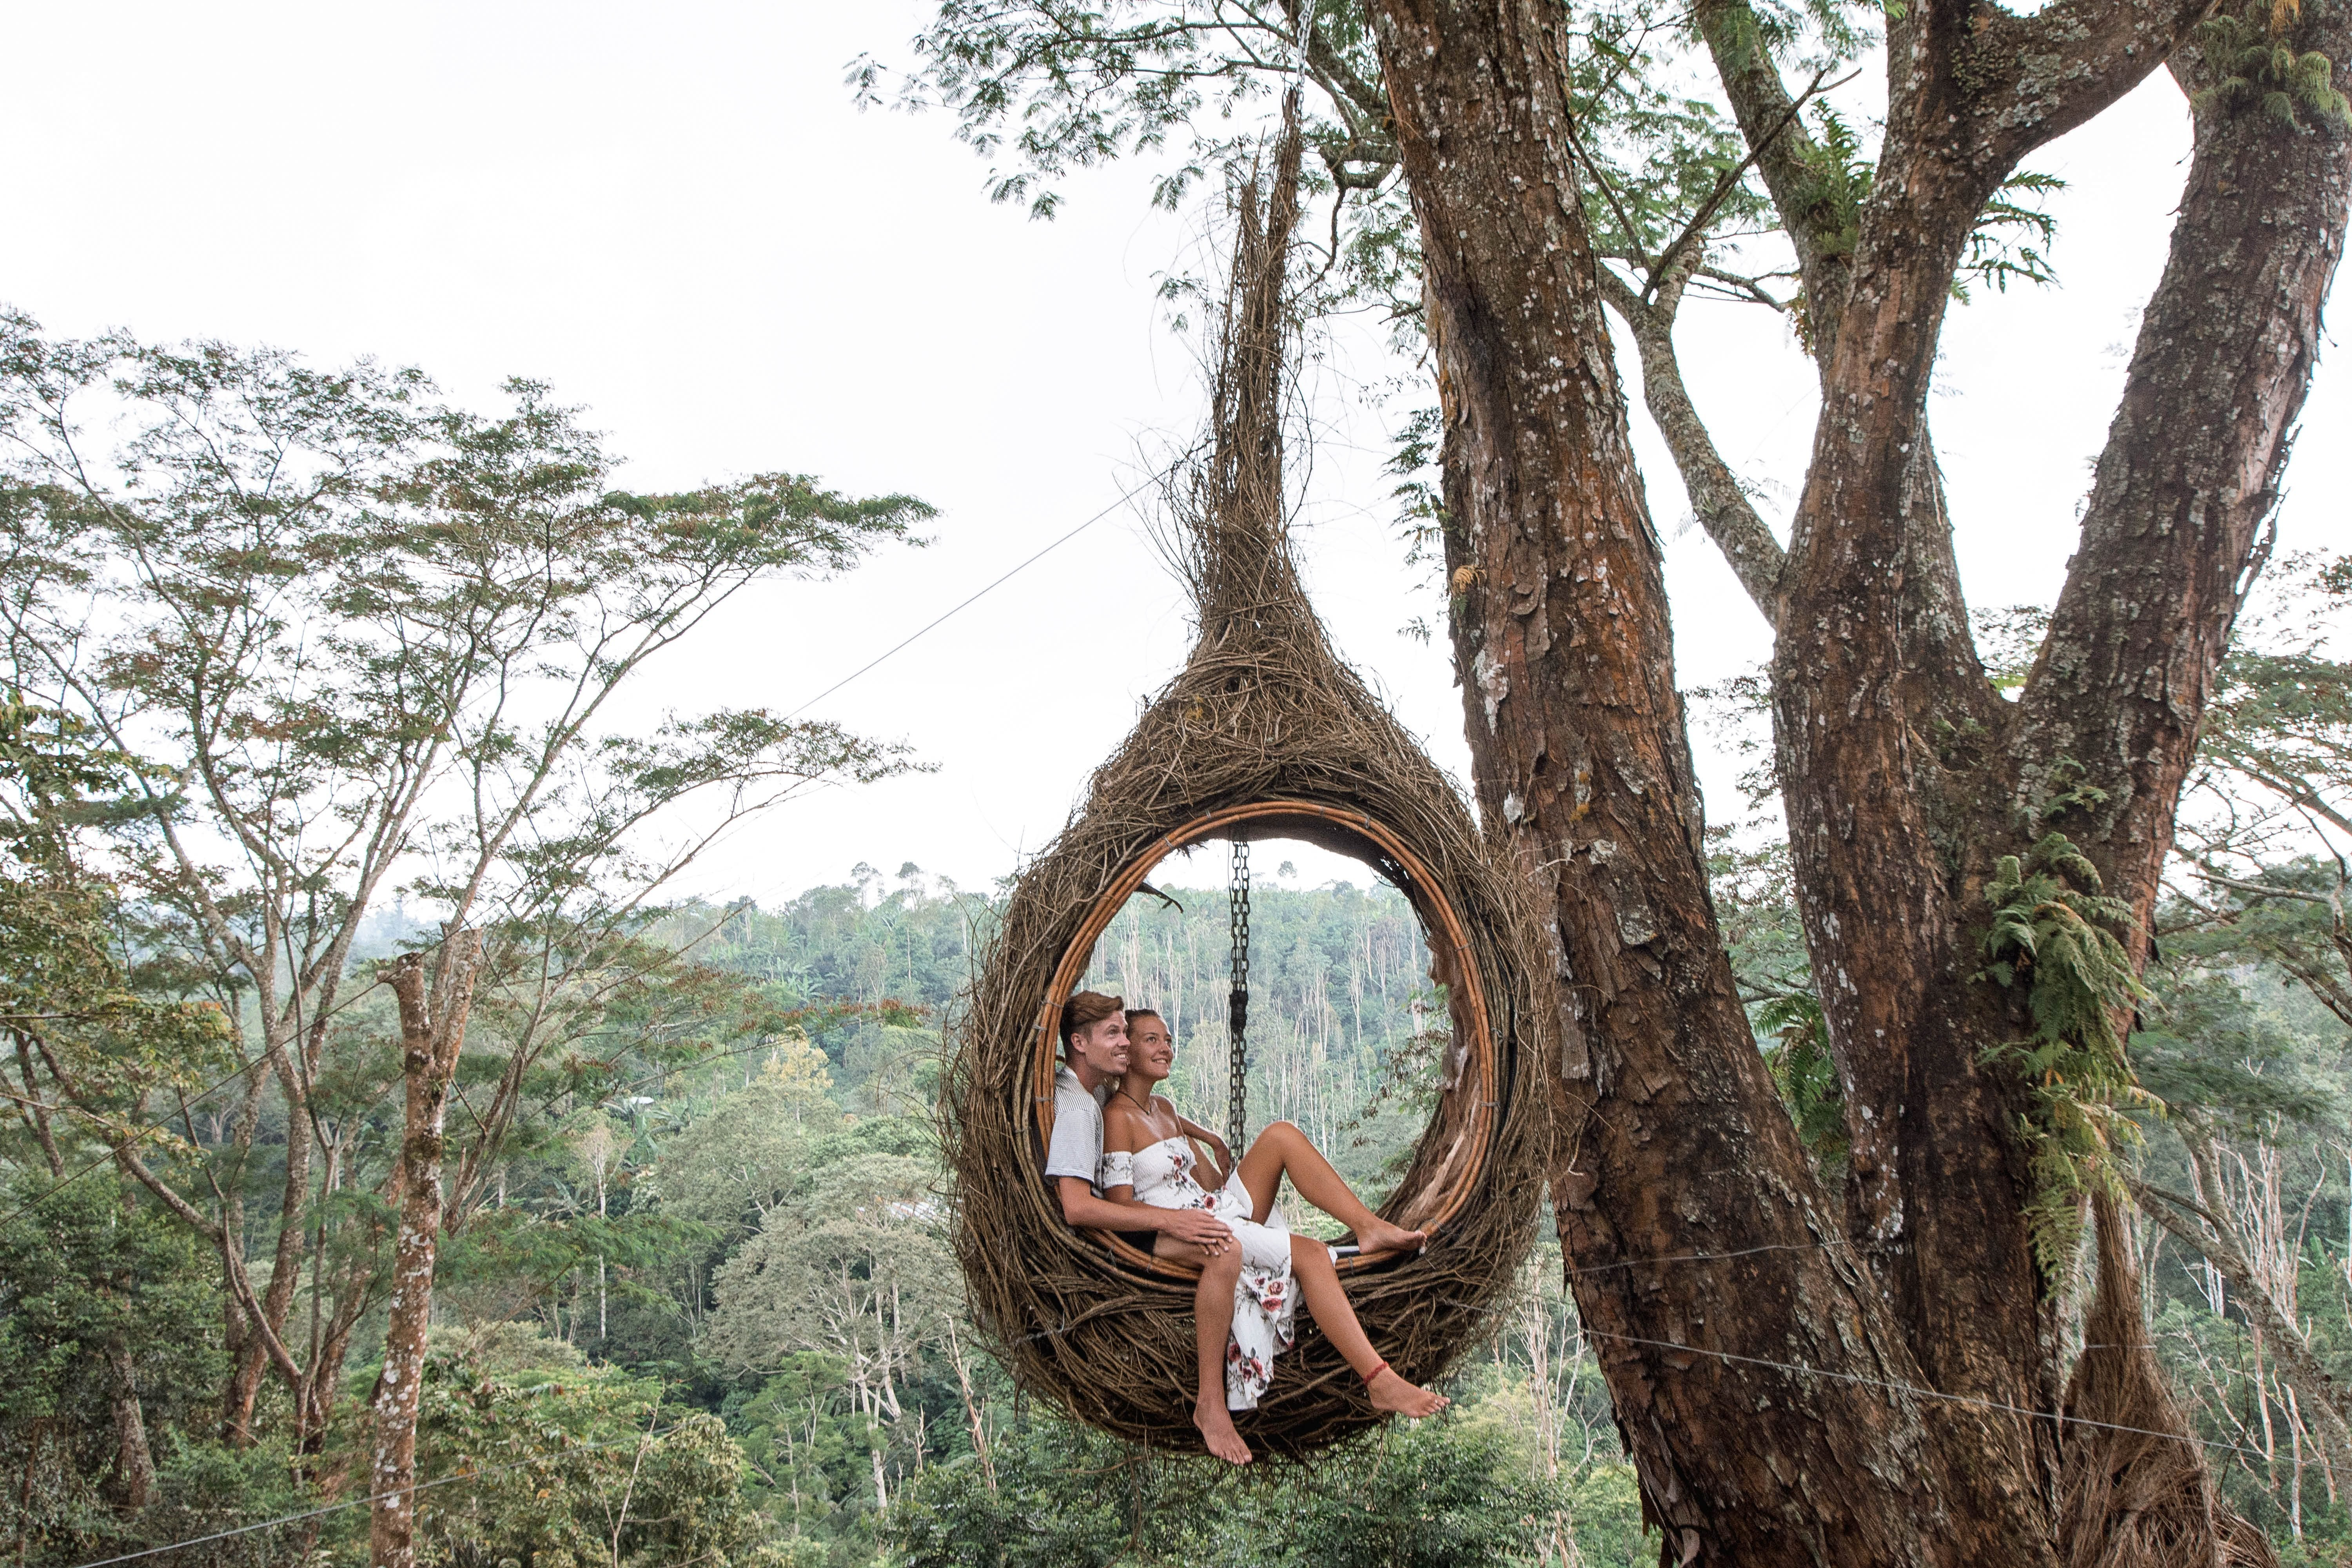 Wanagiri Hidden Hills Bali Swing Bali Nest things to do in munduk